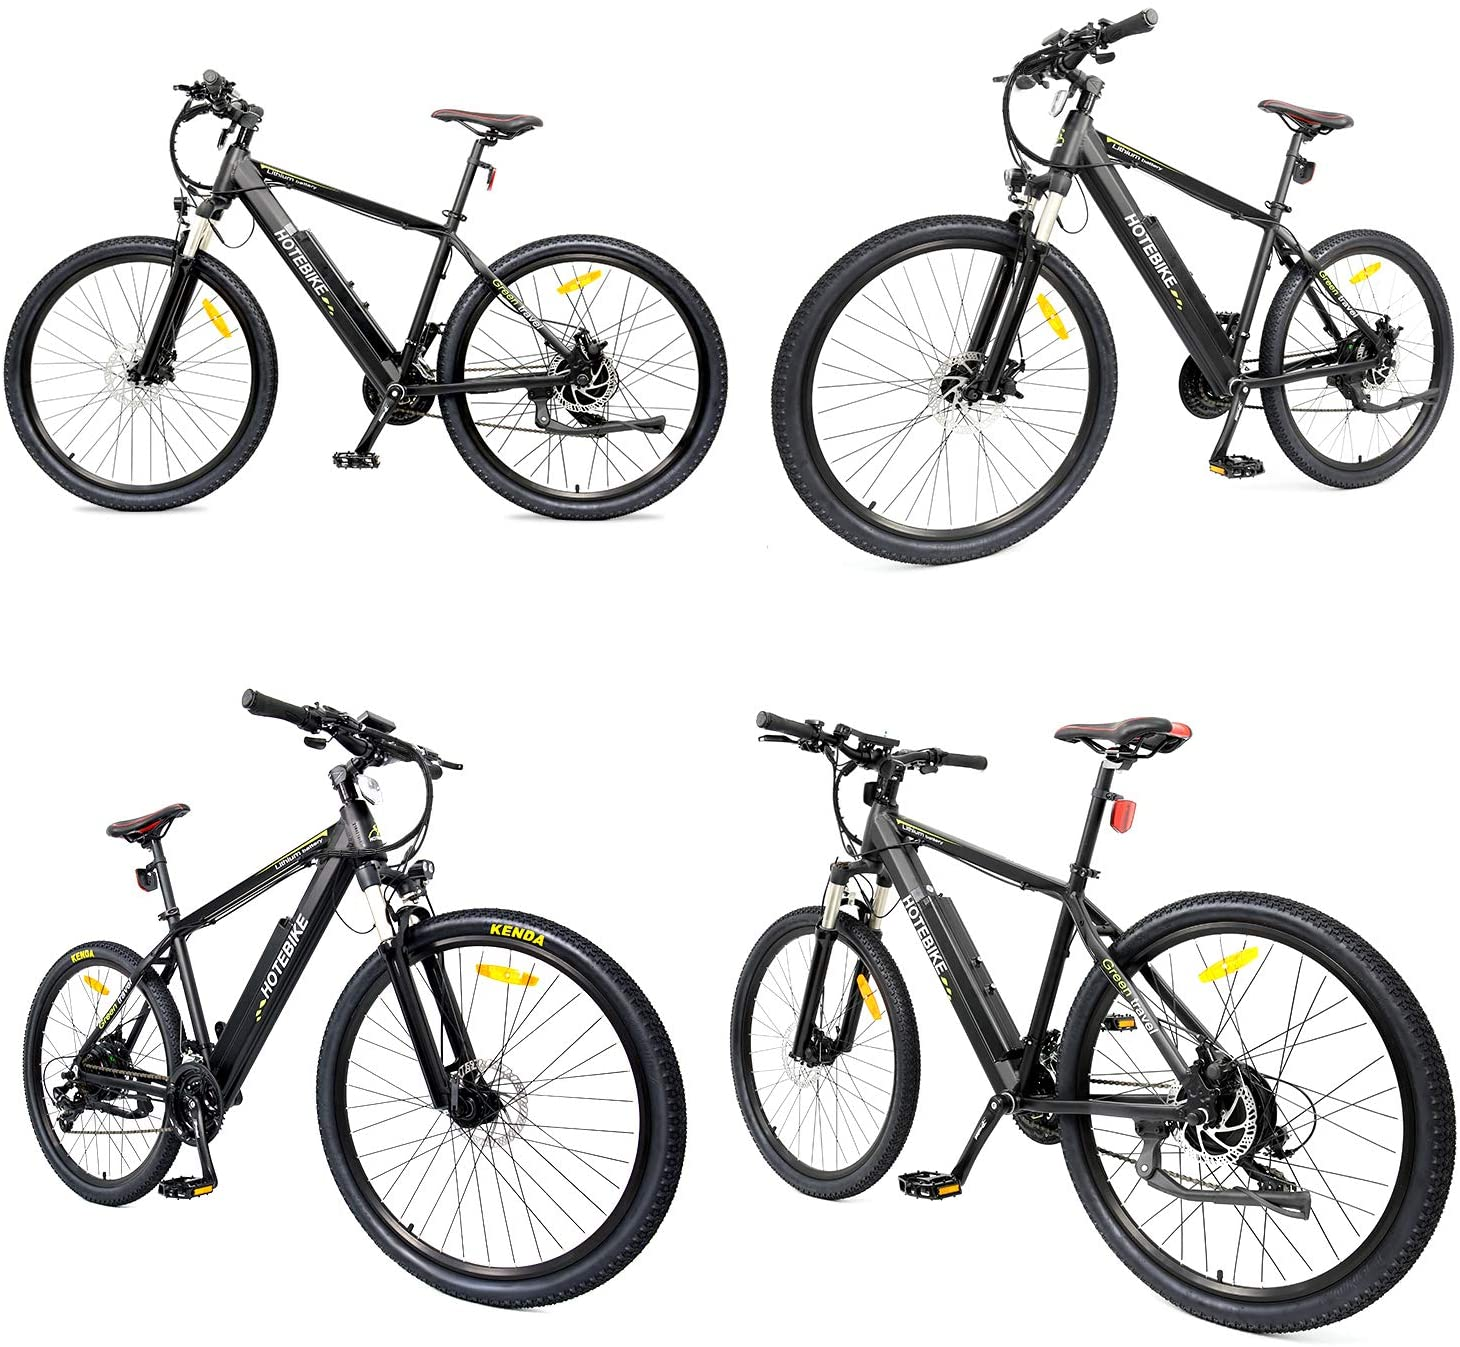 Trek electric bike,HOTEBIKE electric bicycle,Trek pedal-assist bikes,Trek bicycle